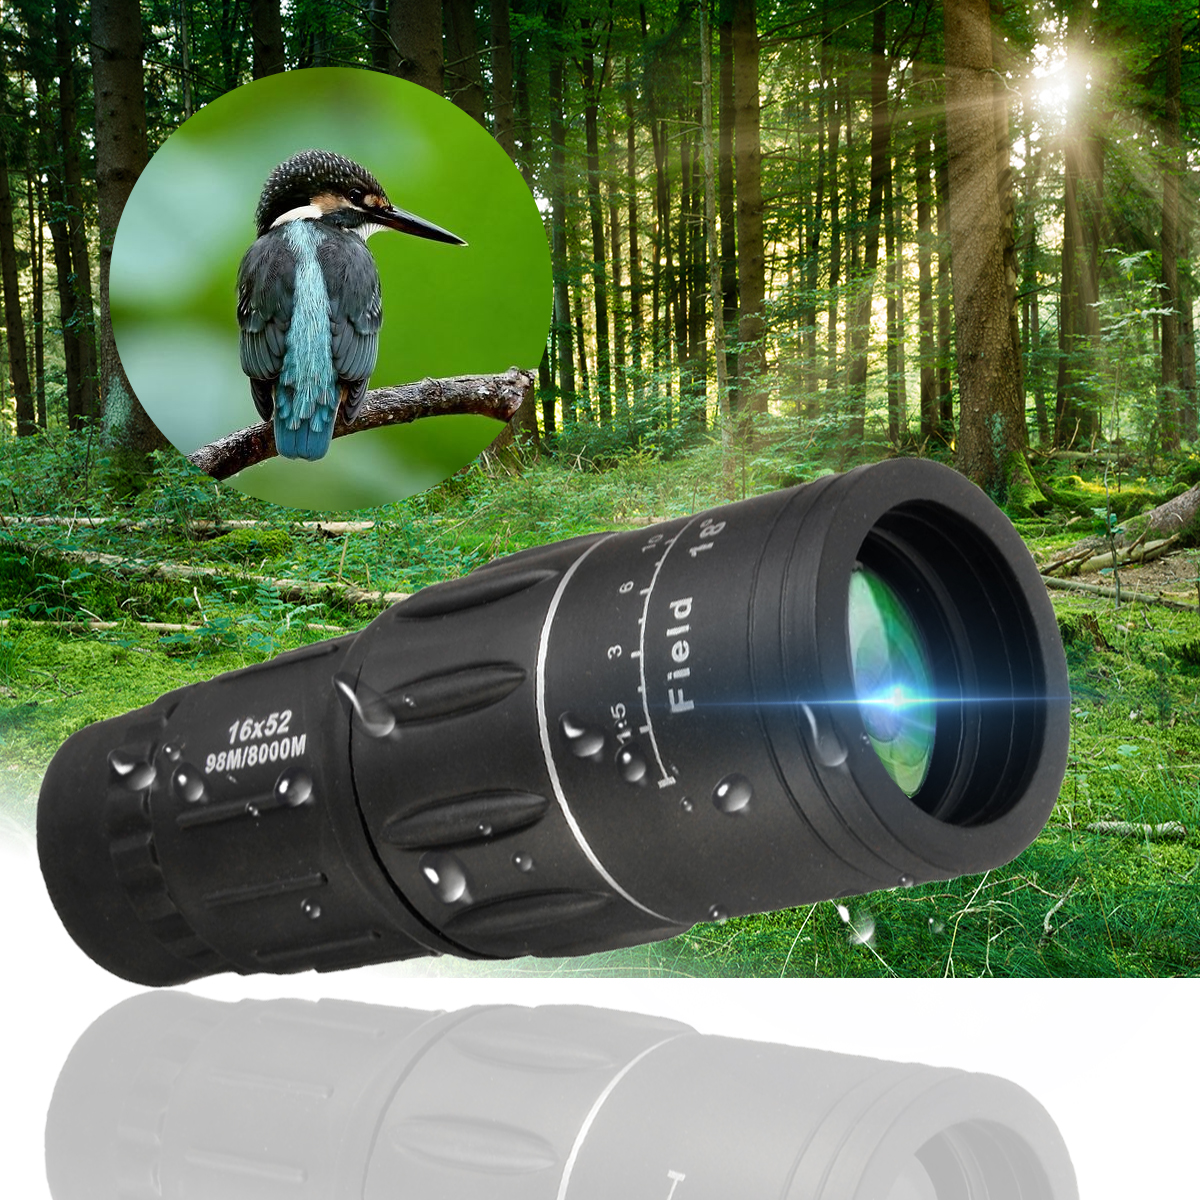 Valentine's gifts - 16x52 HD Portable Handheld Monocular Telescope Day Night Vision Dual Focus Optical Zoom Waterproof Outdoor Camping Accessories For Hiking Camping Hunting